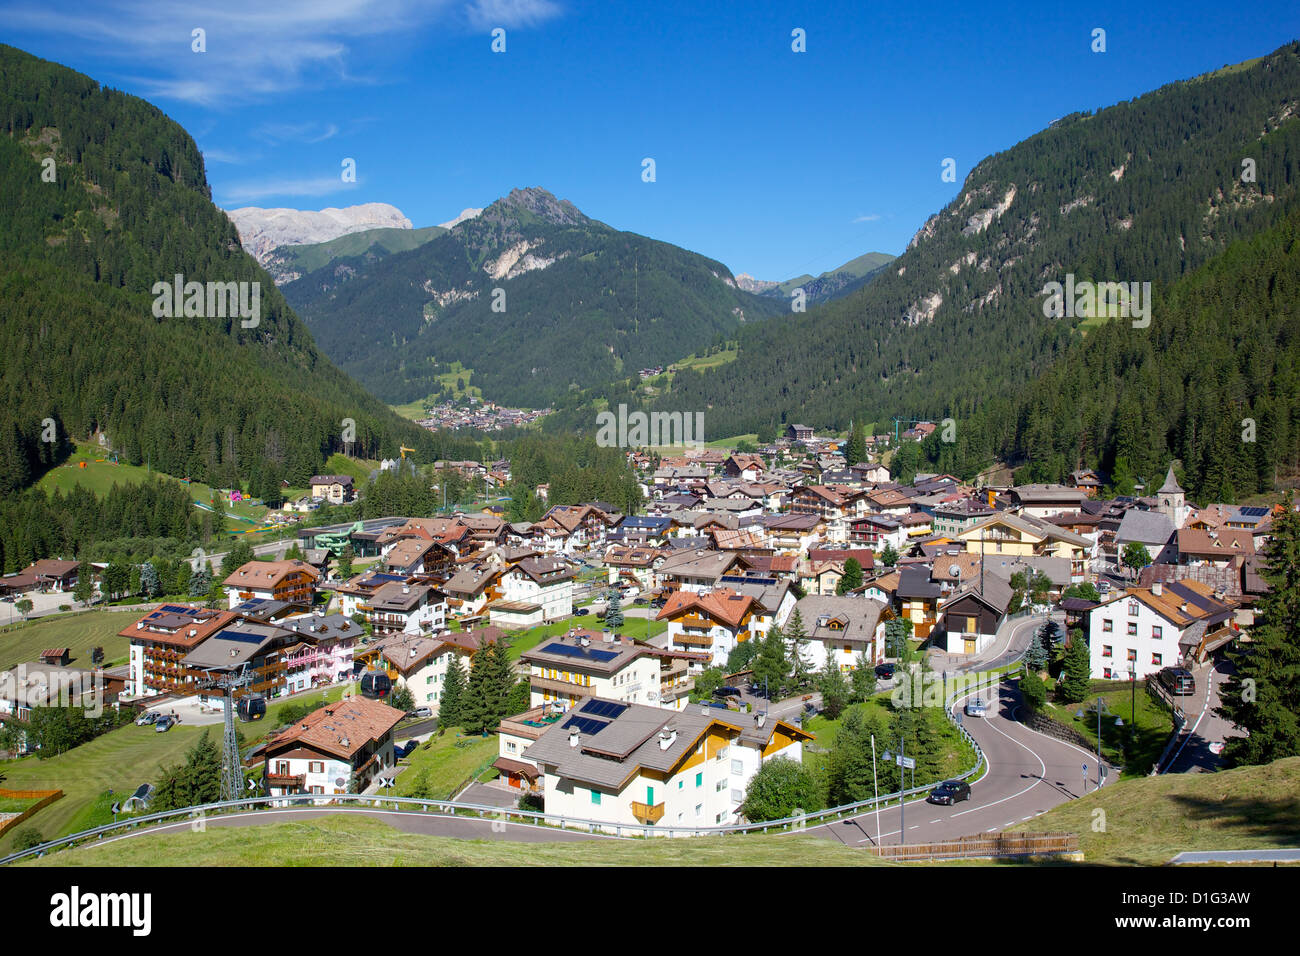 View over town from above, Canazei, Trentino-Alto Adige, Italy, Europe - Stock Image